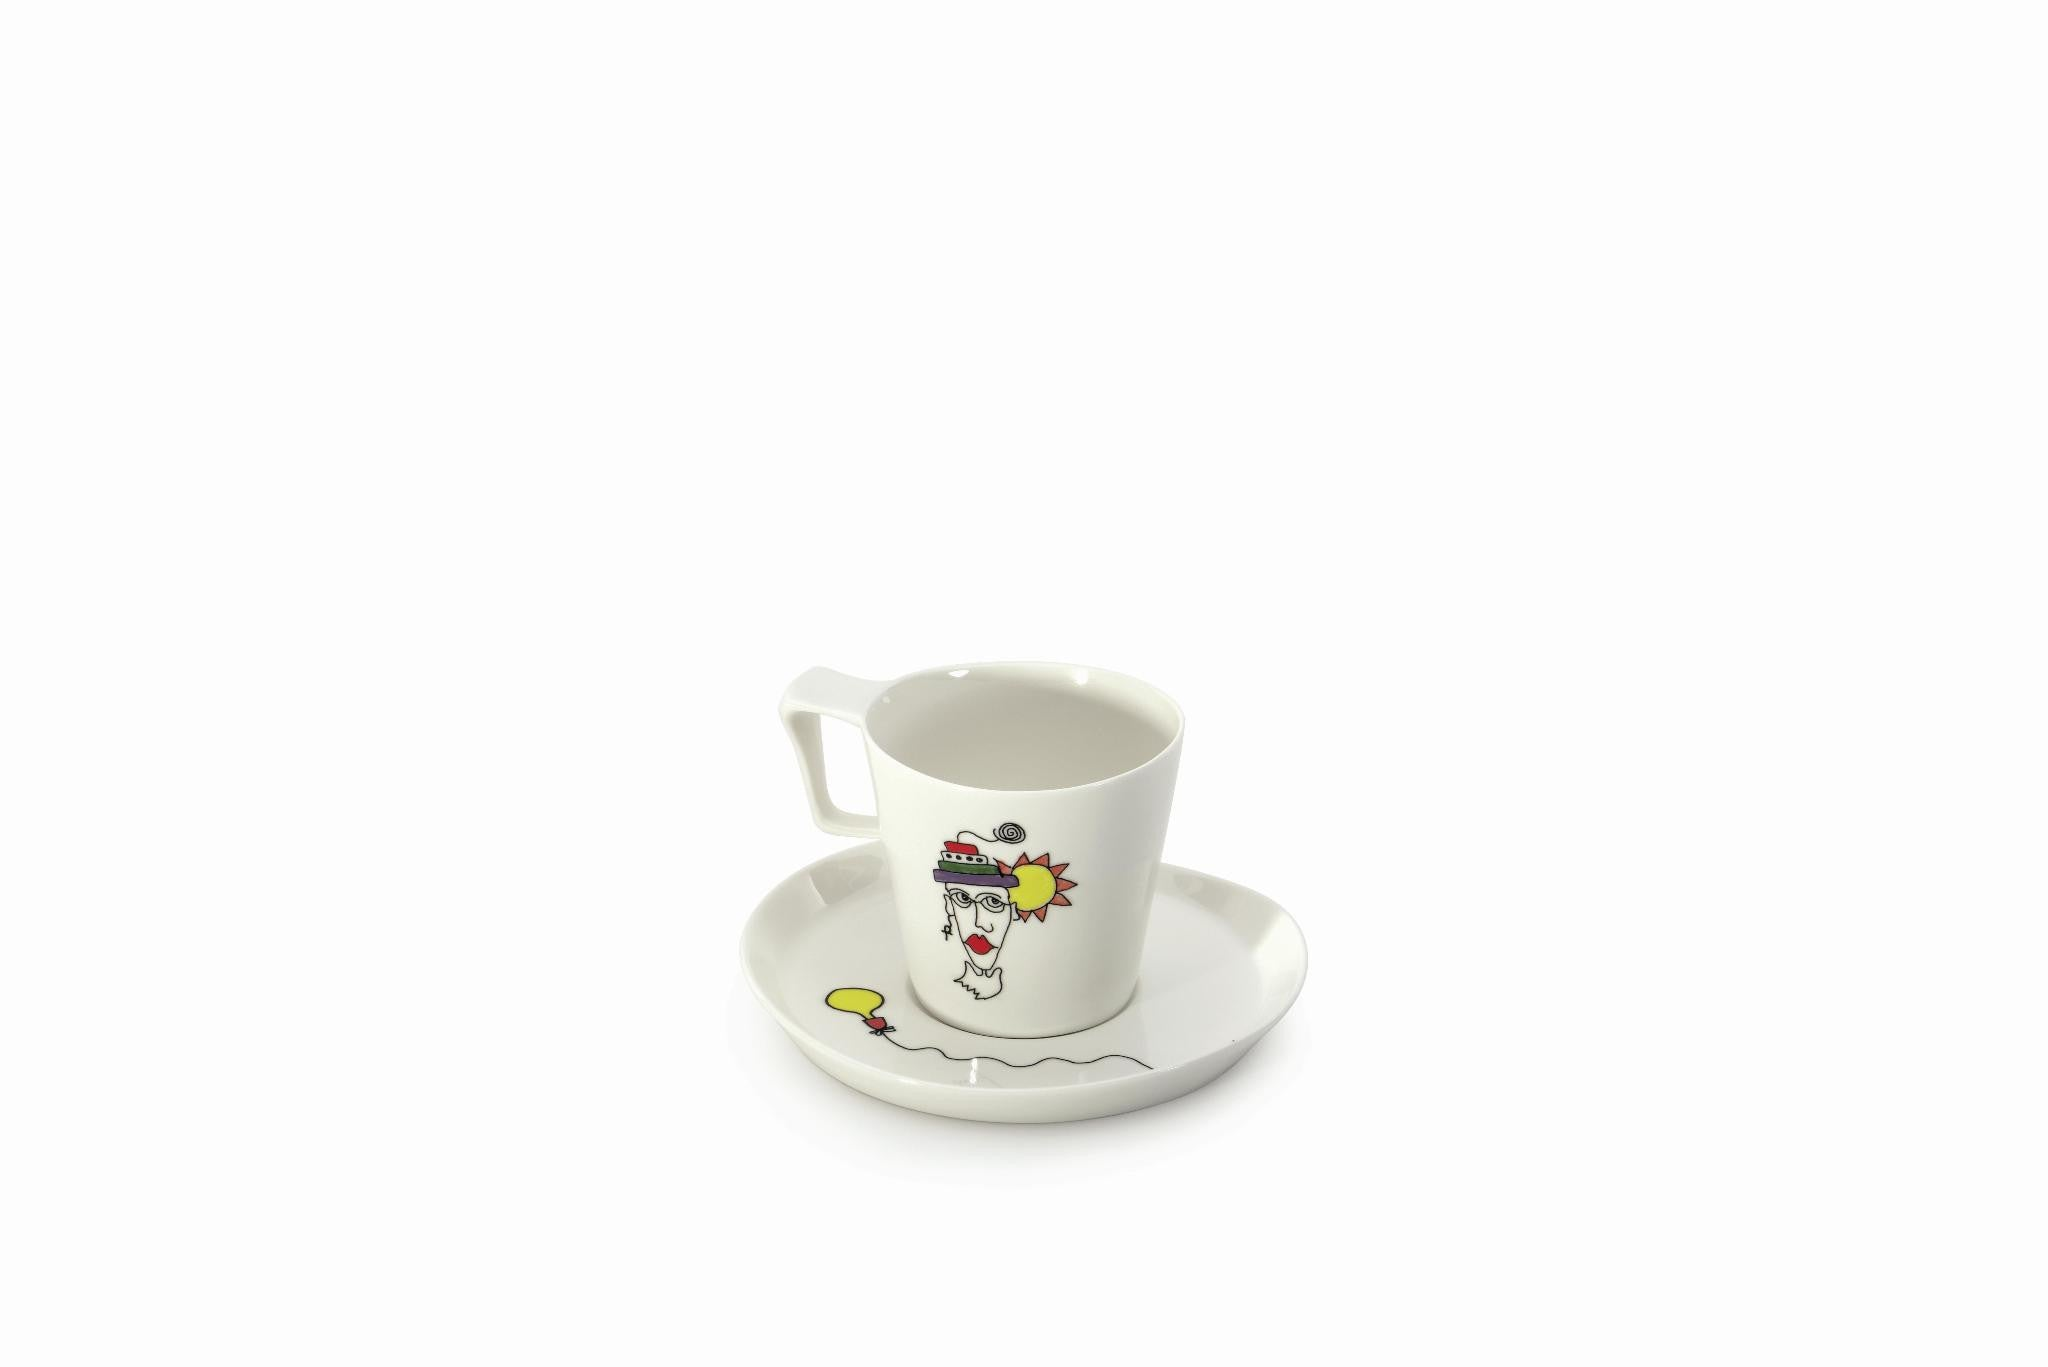 Eclipse Set of 2 0.4L Breakfast Cup & Saucers